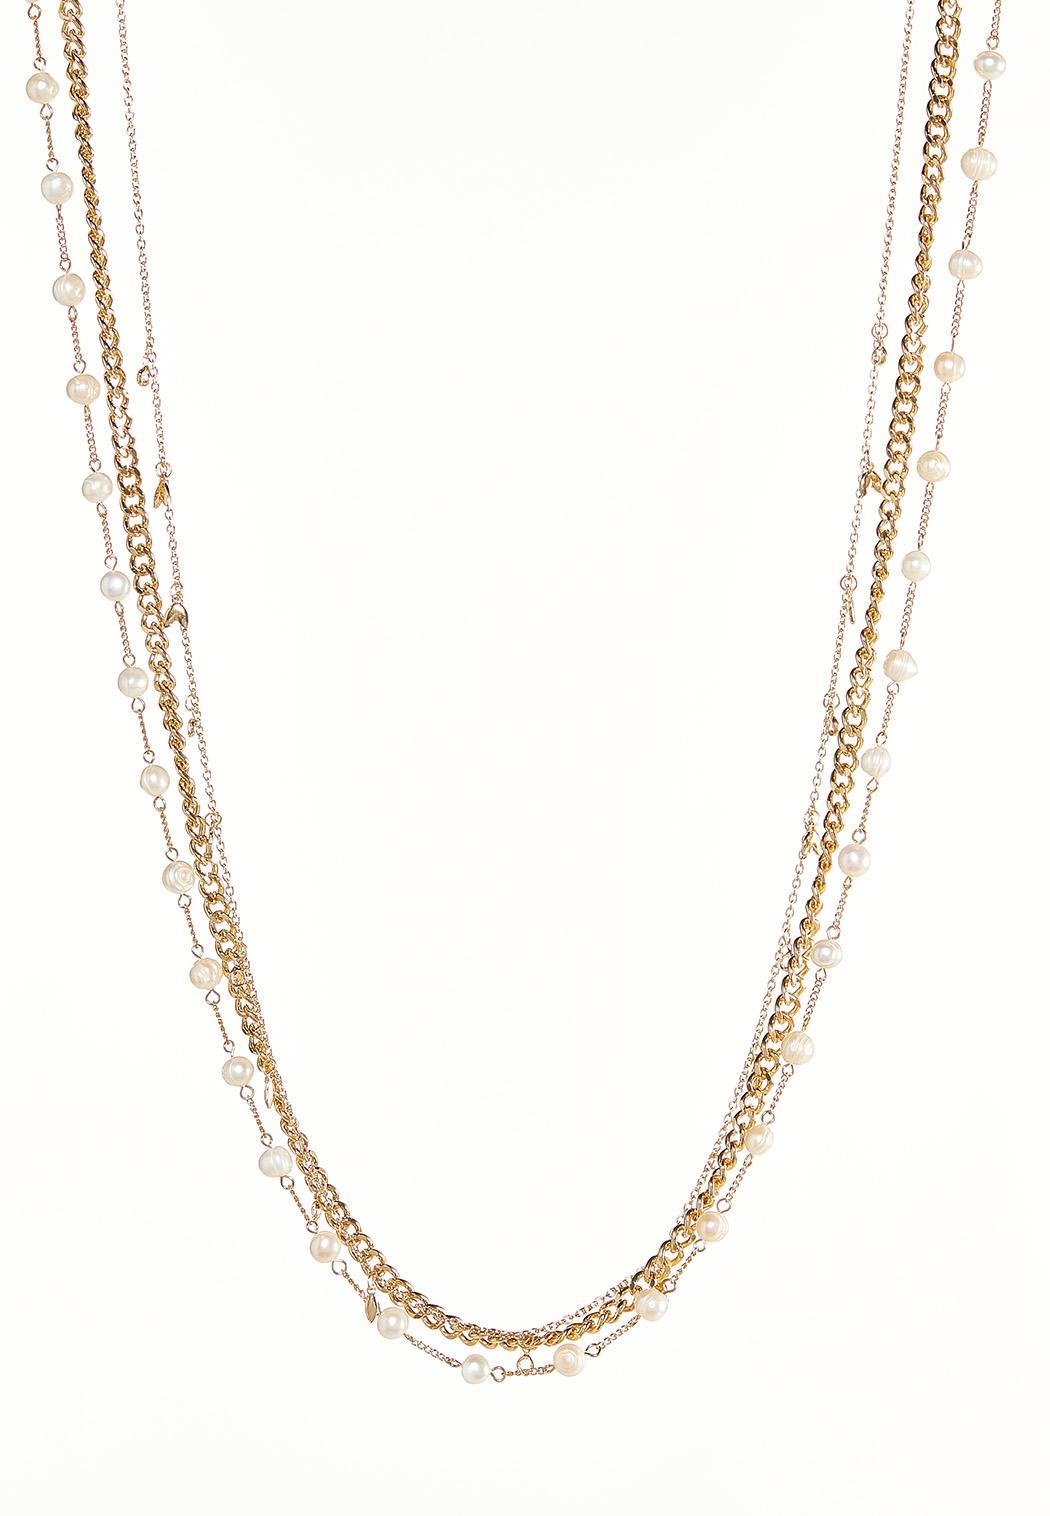 Layered Pearls And Links Necklace